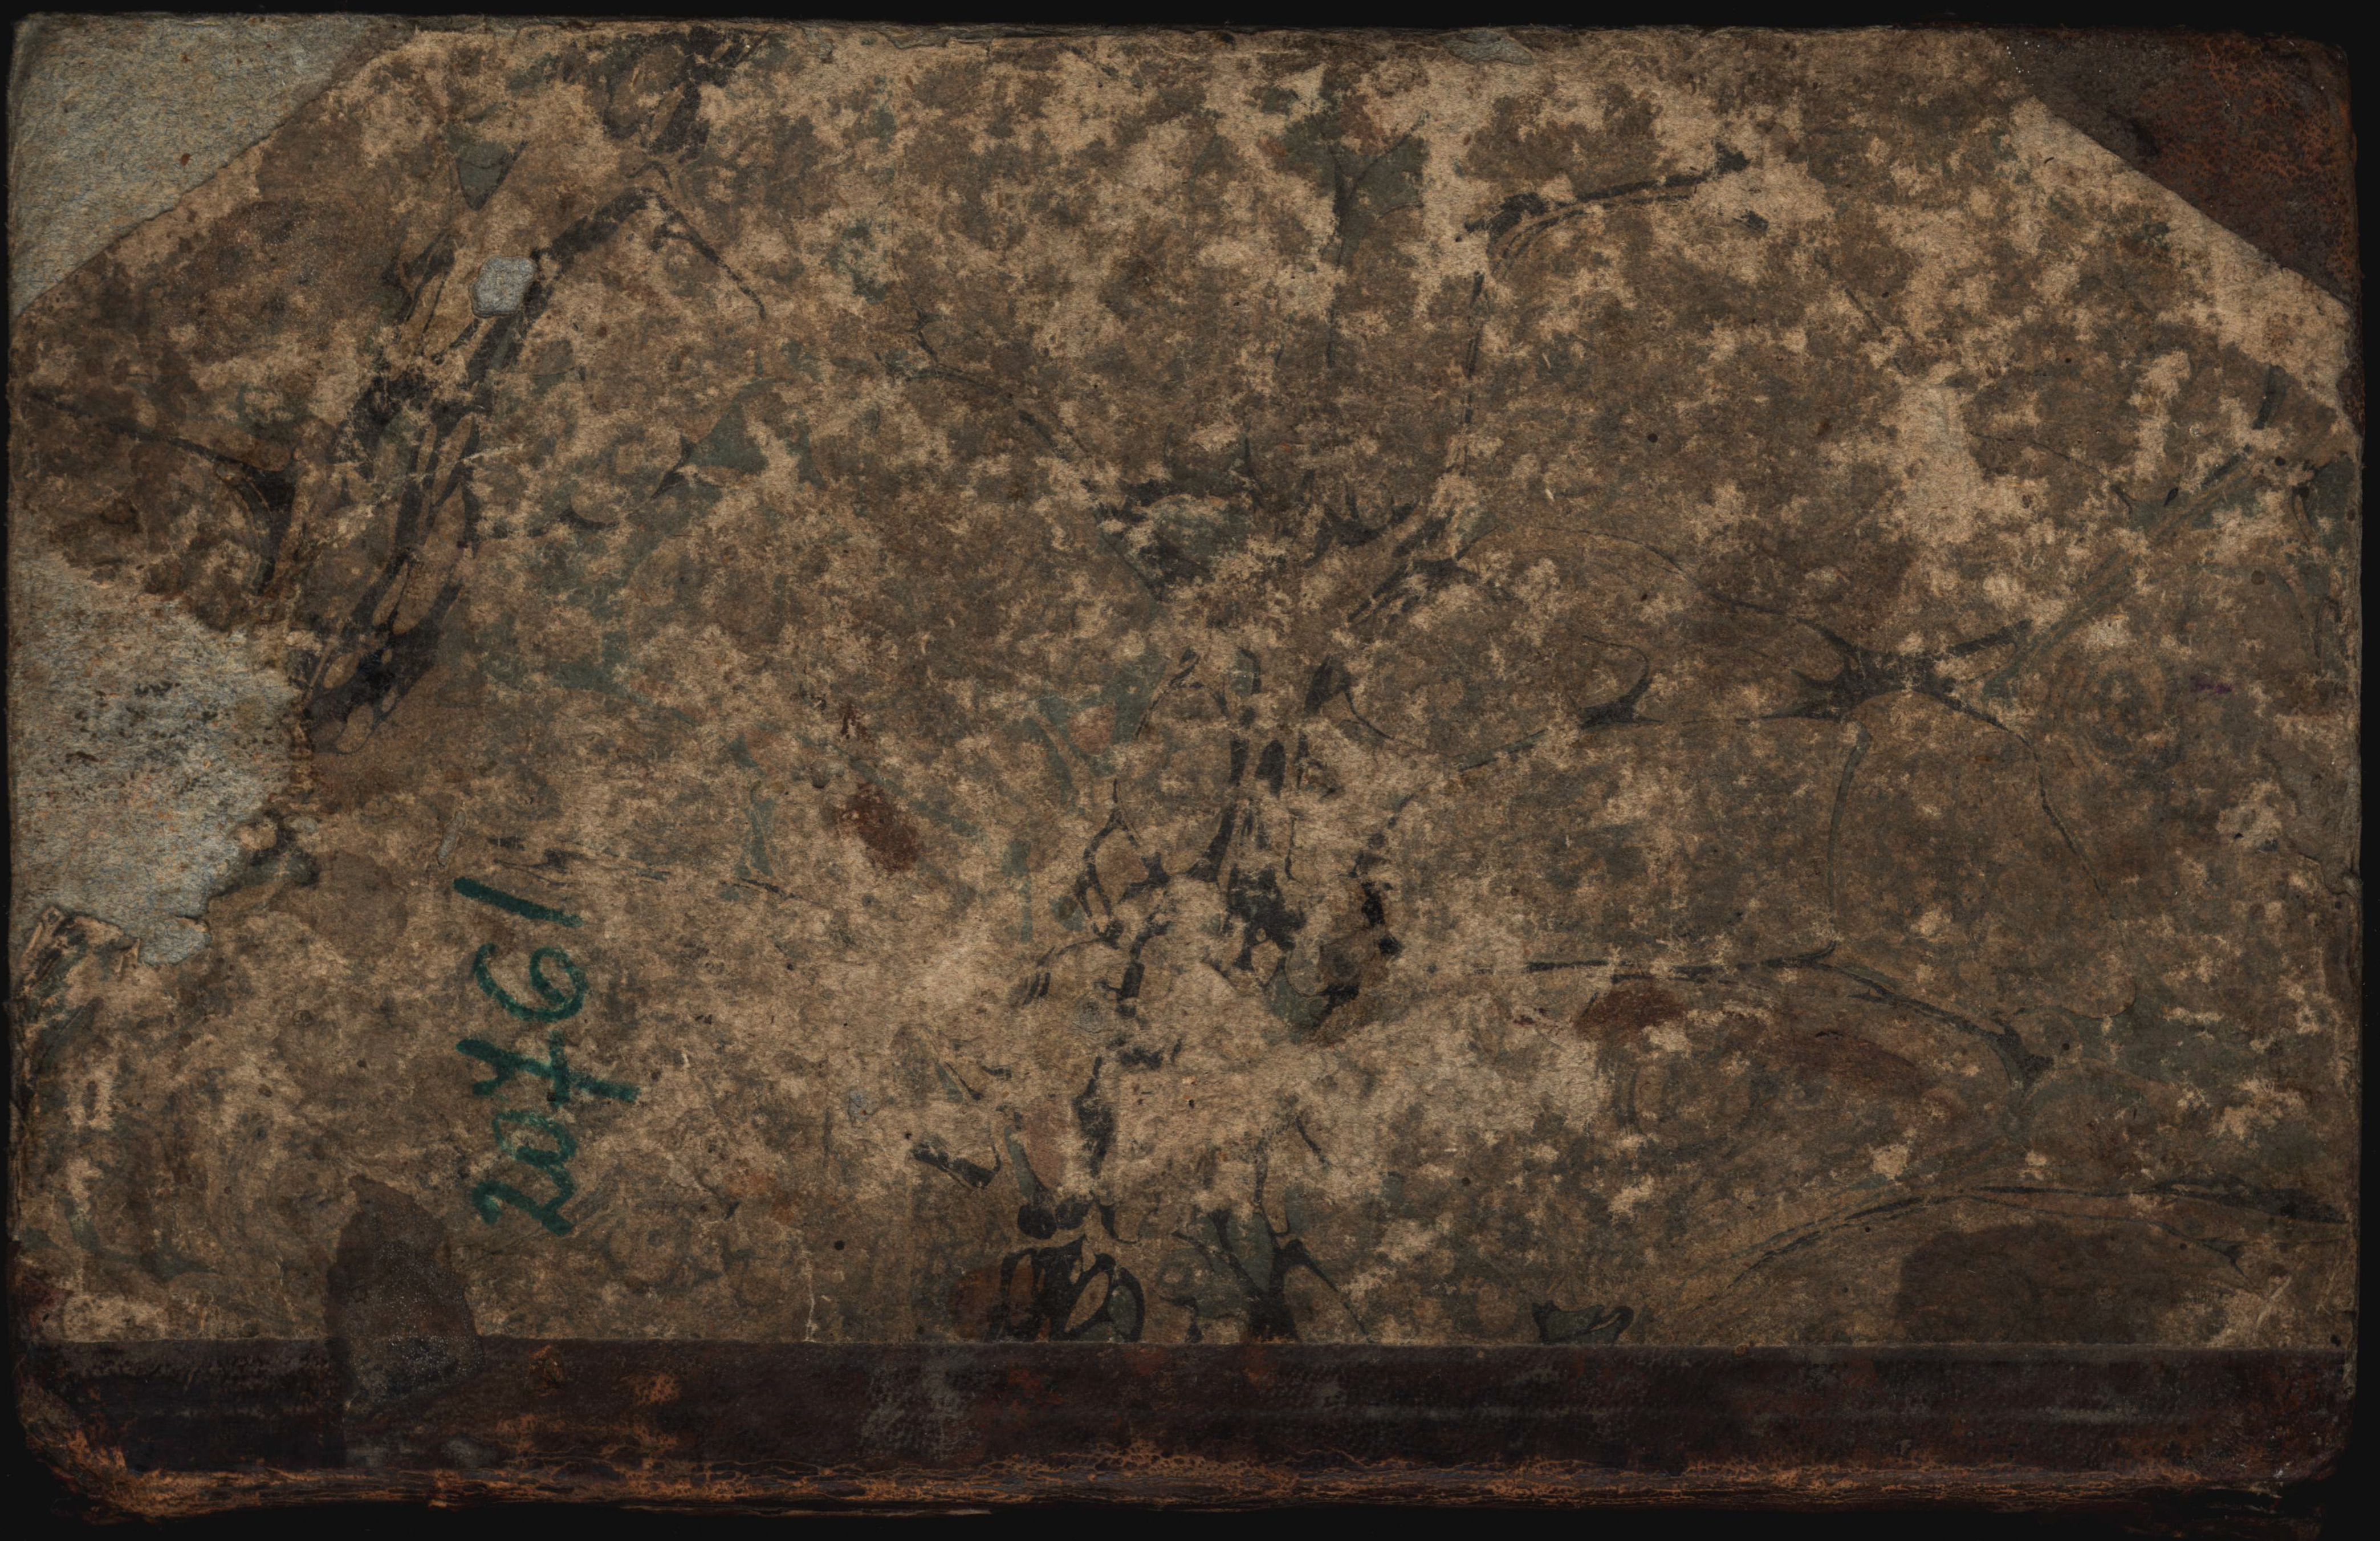 Creased Book Cover Texture : Quality vintage book texture textures for photoshop free